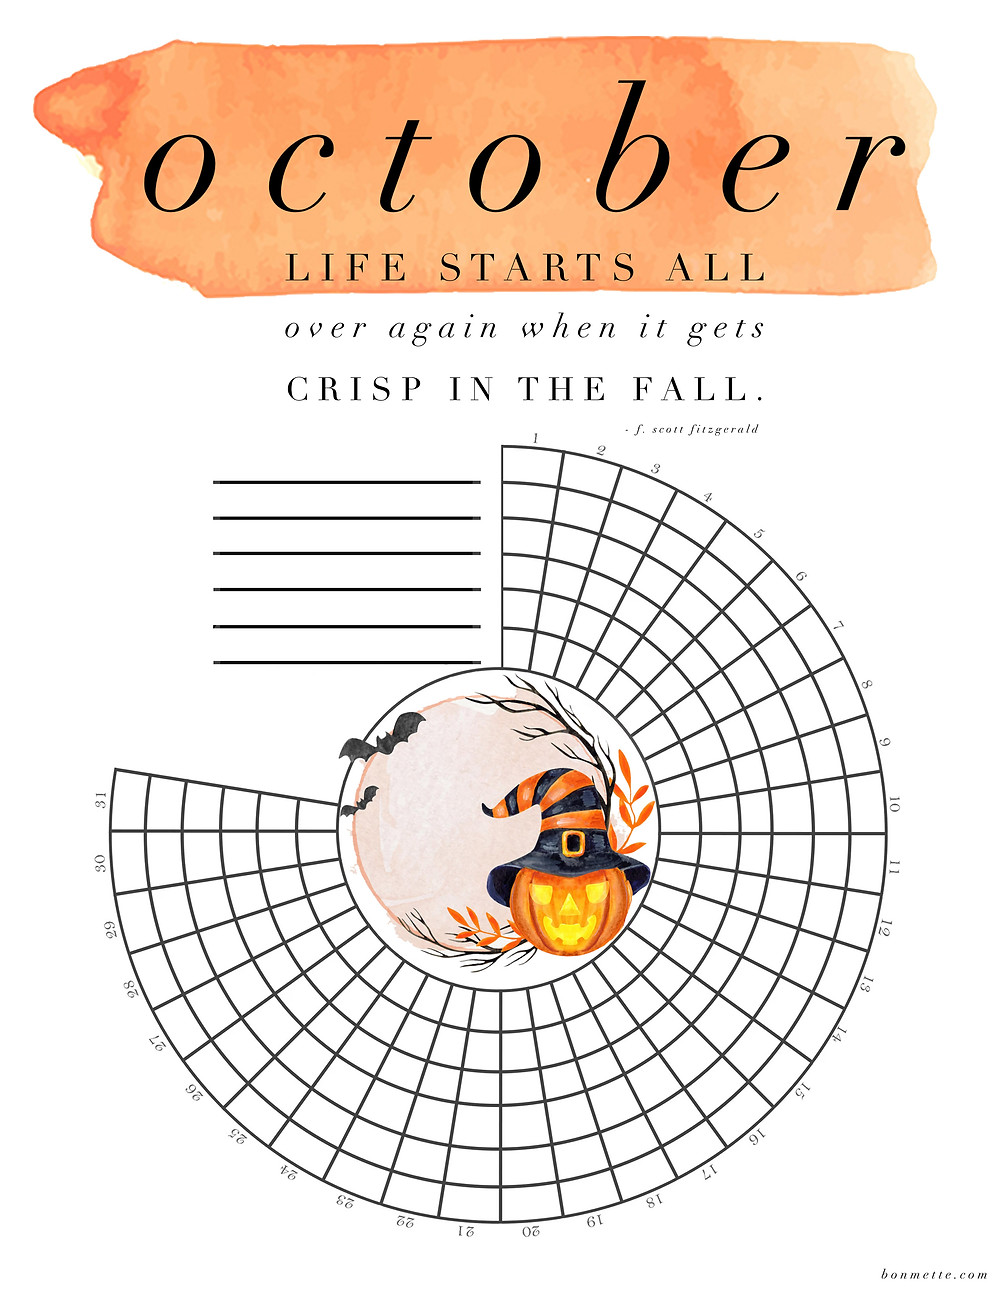 An October circle free download habit tracker with Halloween decoration including pumpkins and bats and a quote about fall.